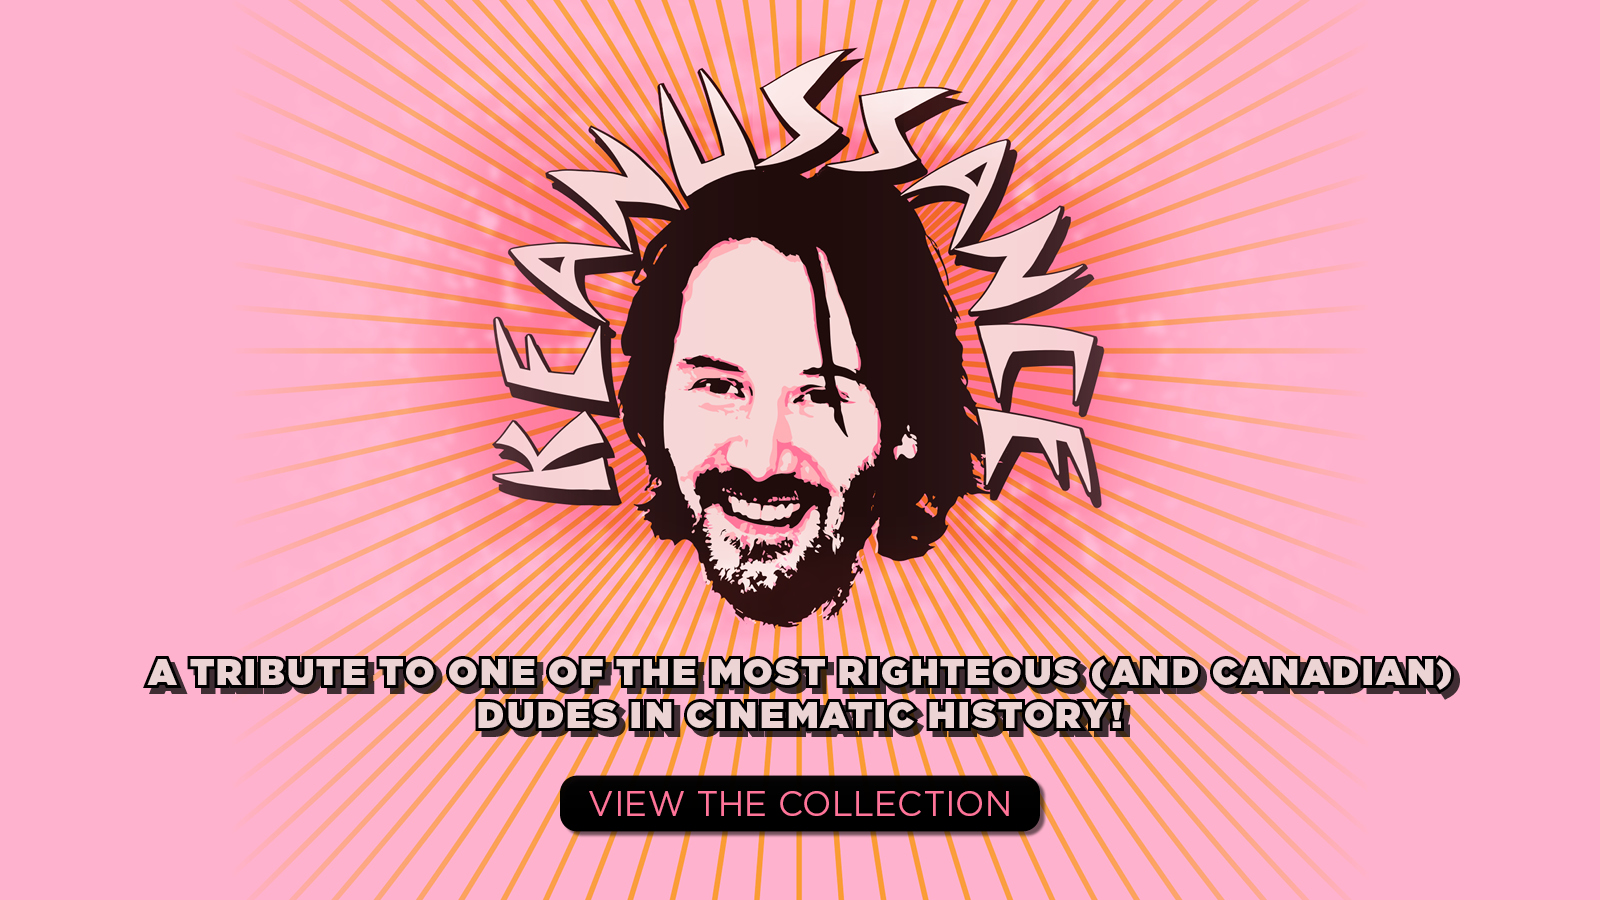 Keanussance – A tribute to one of the most righteous (and Canadian) dudes in cinematic history! – View the collection